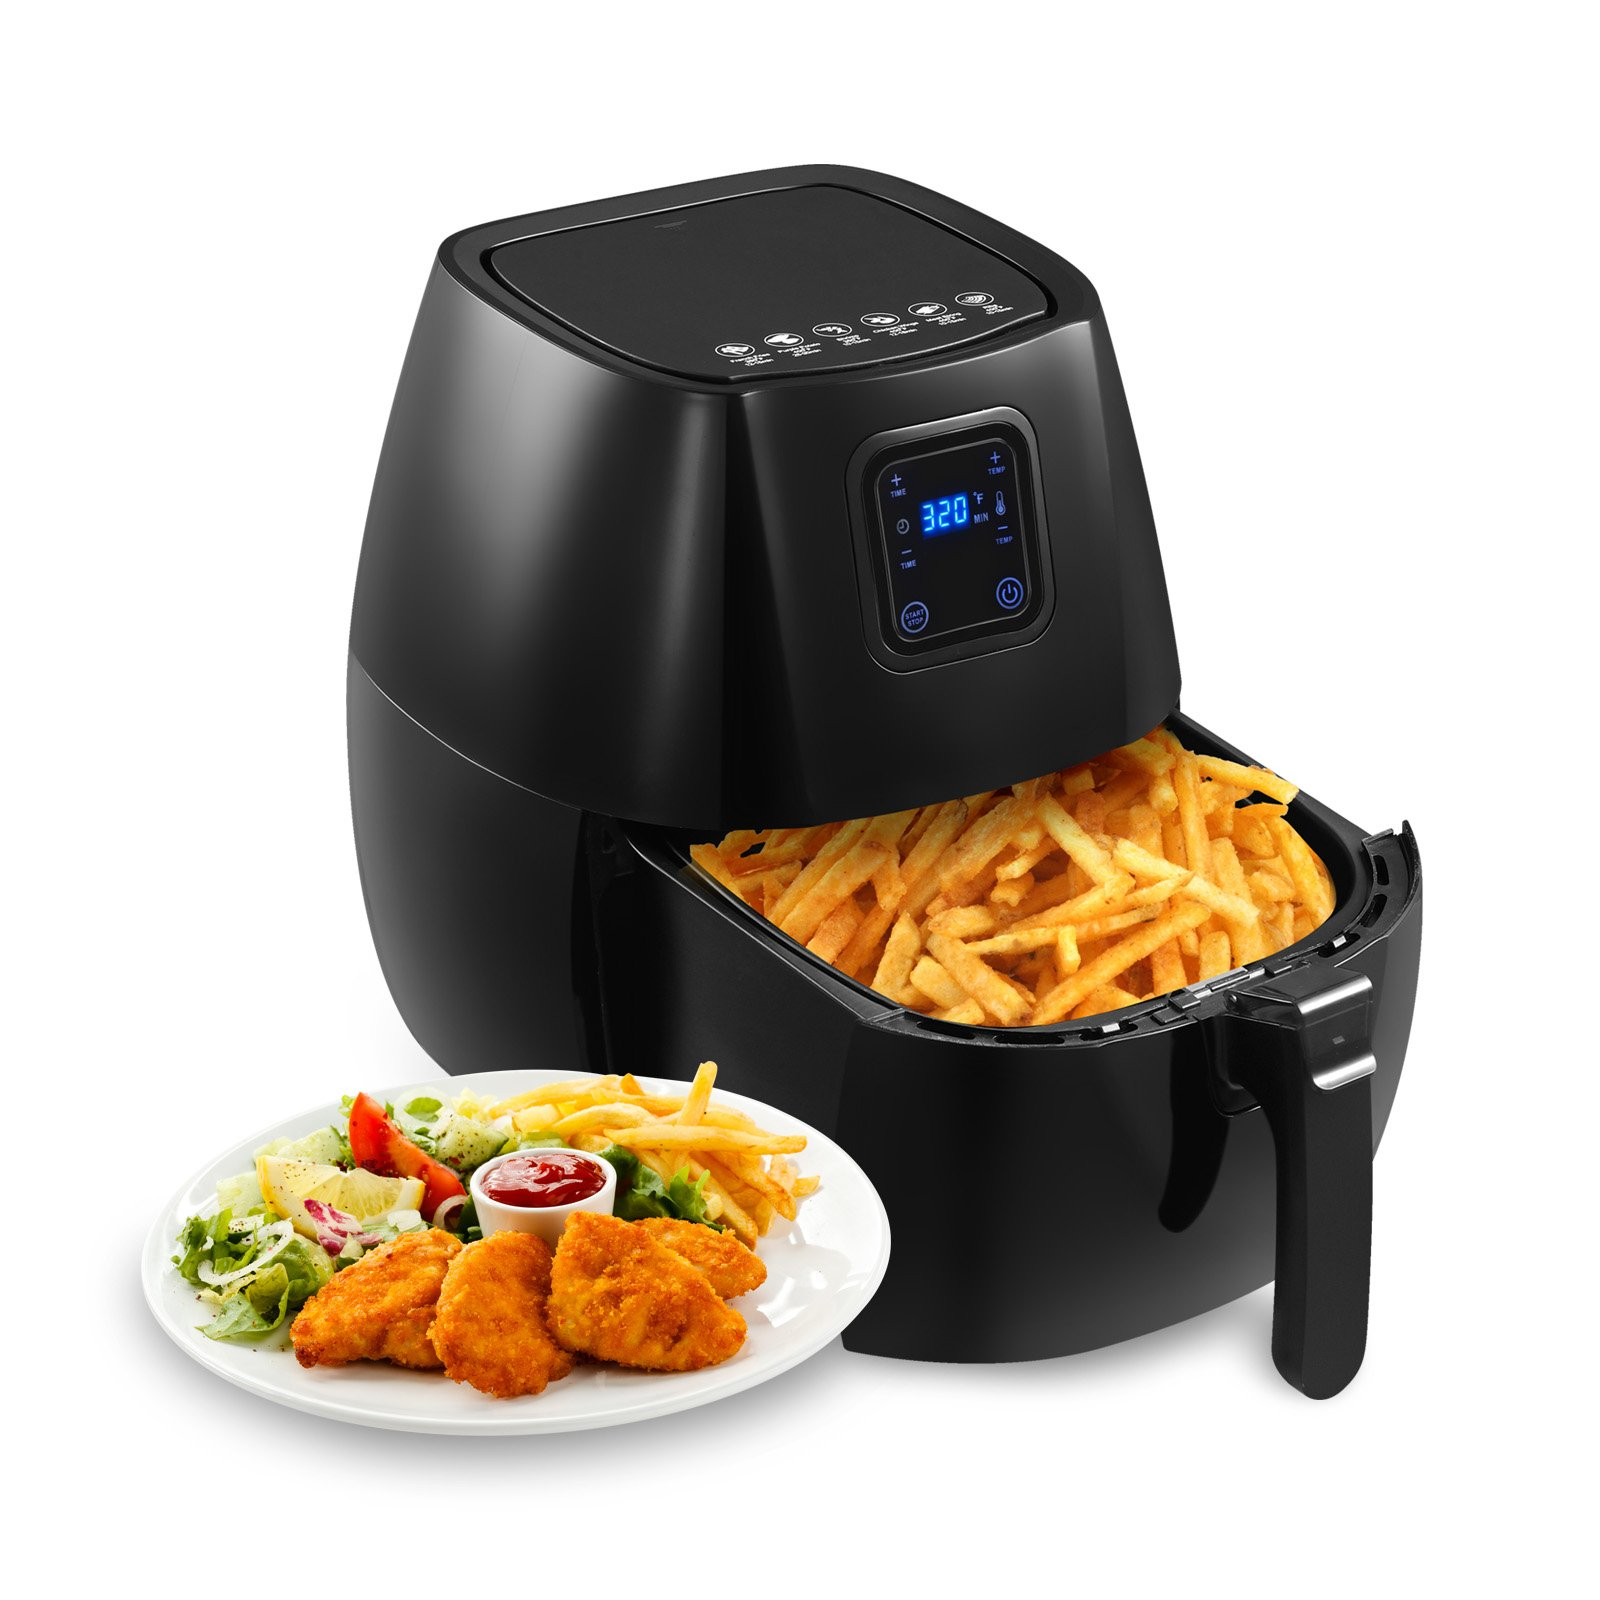 KUPPET 4.76QT Digital Air Fryer-8-IN-1 Hot/Deep Fryer with Basket-Rapid Air Technology For Less or No Oil-Timer Temperature Touch Control -Included 6 Cooking Presets & Recipe Book-Black